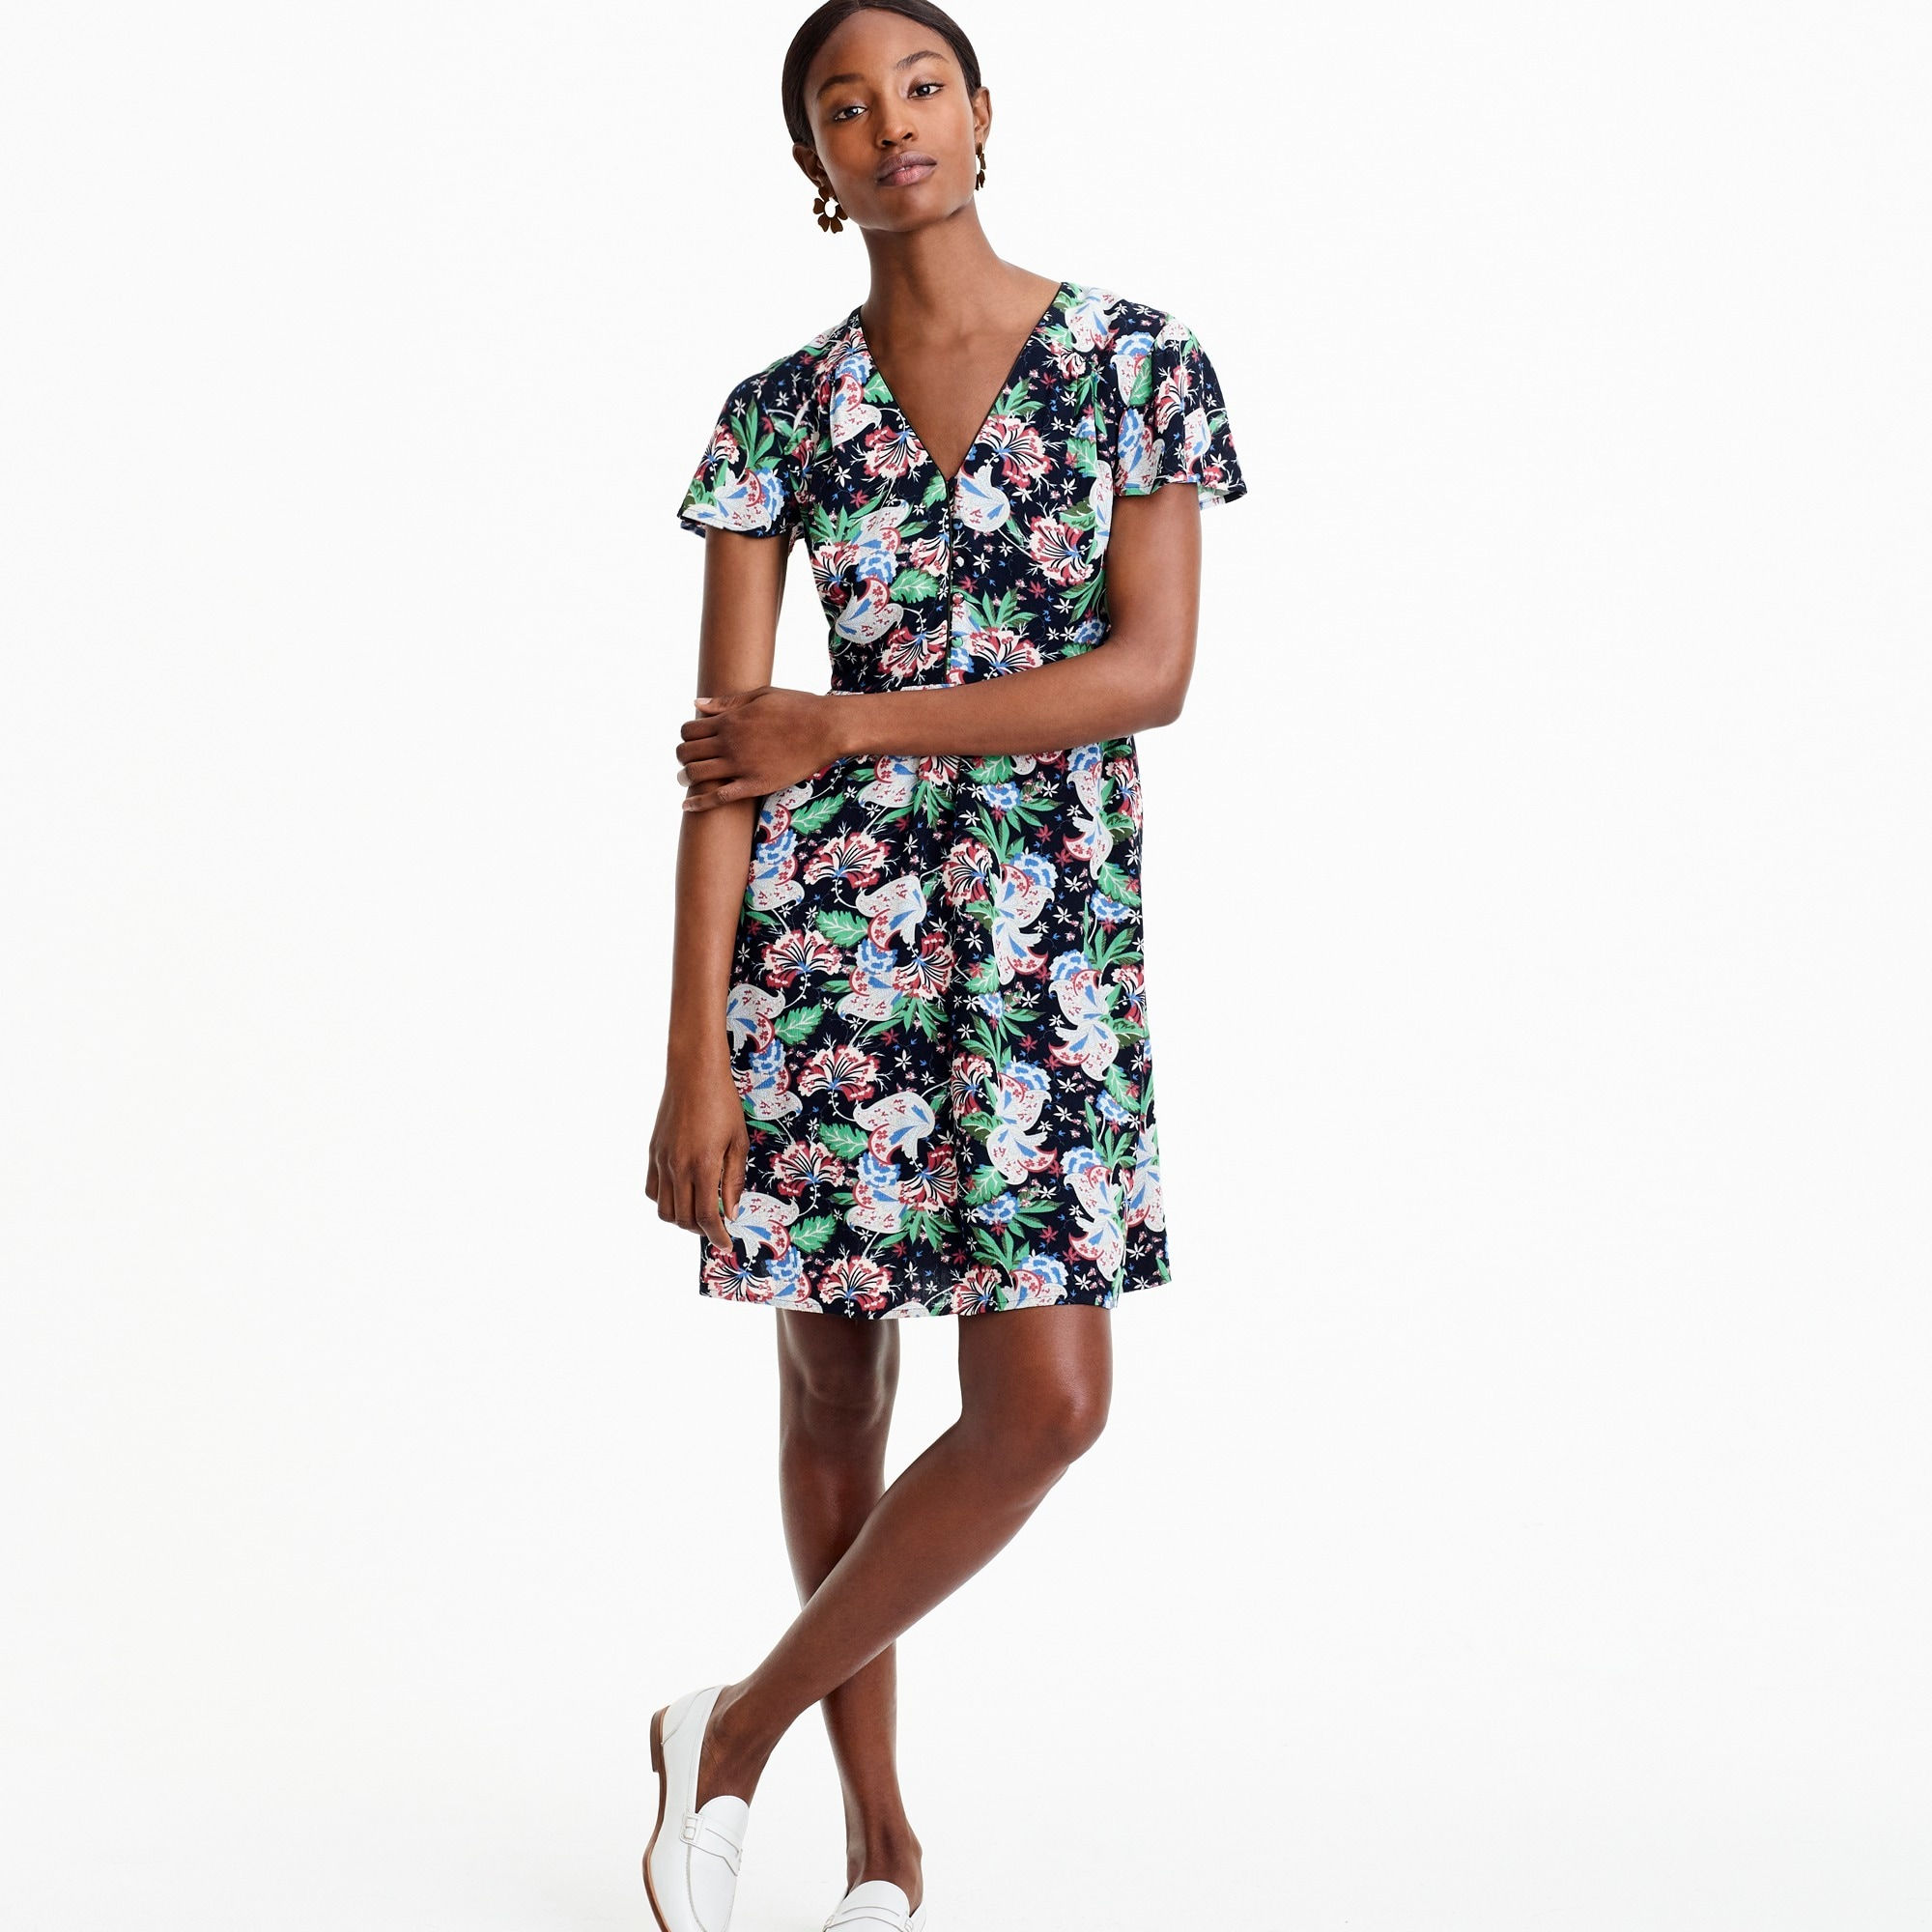 Short-sleeve button-front dress in island floral women dresses c